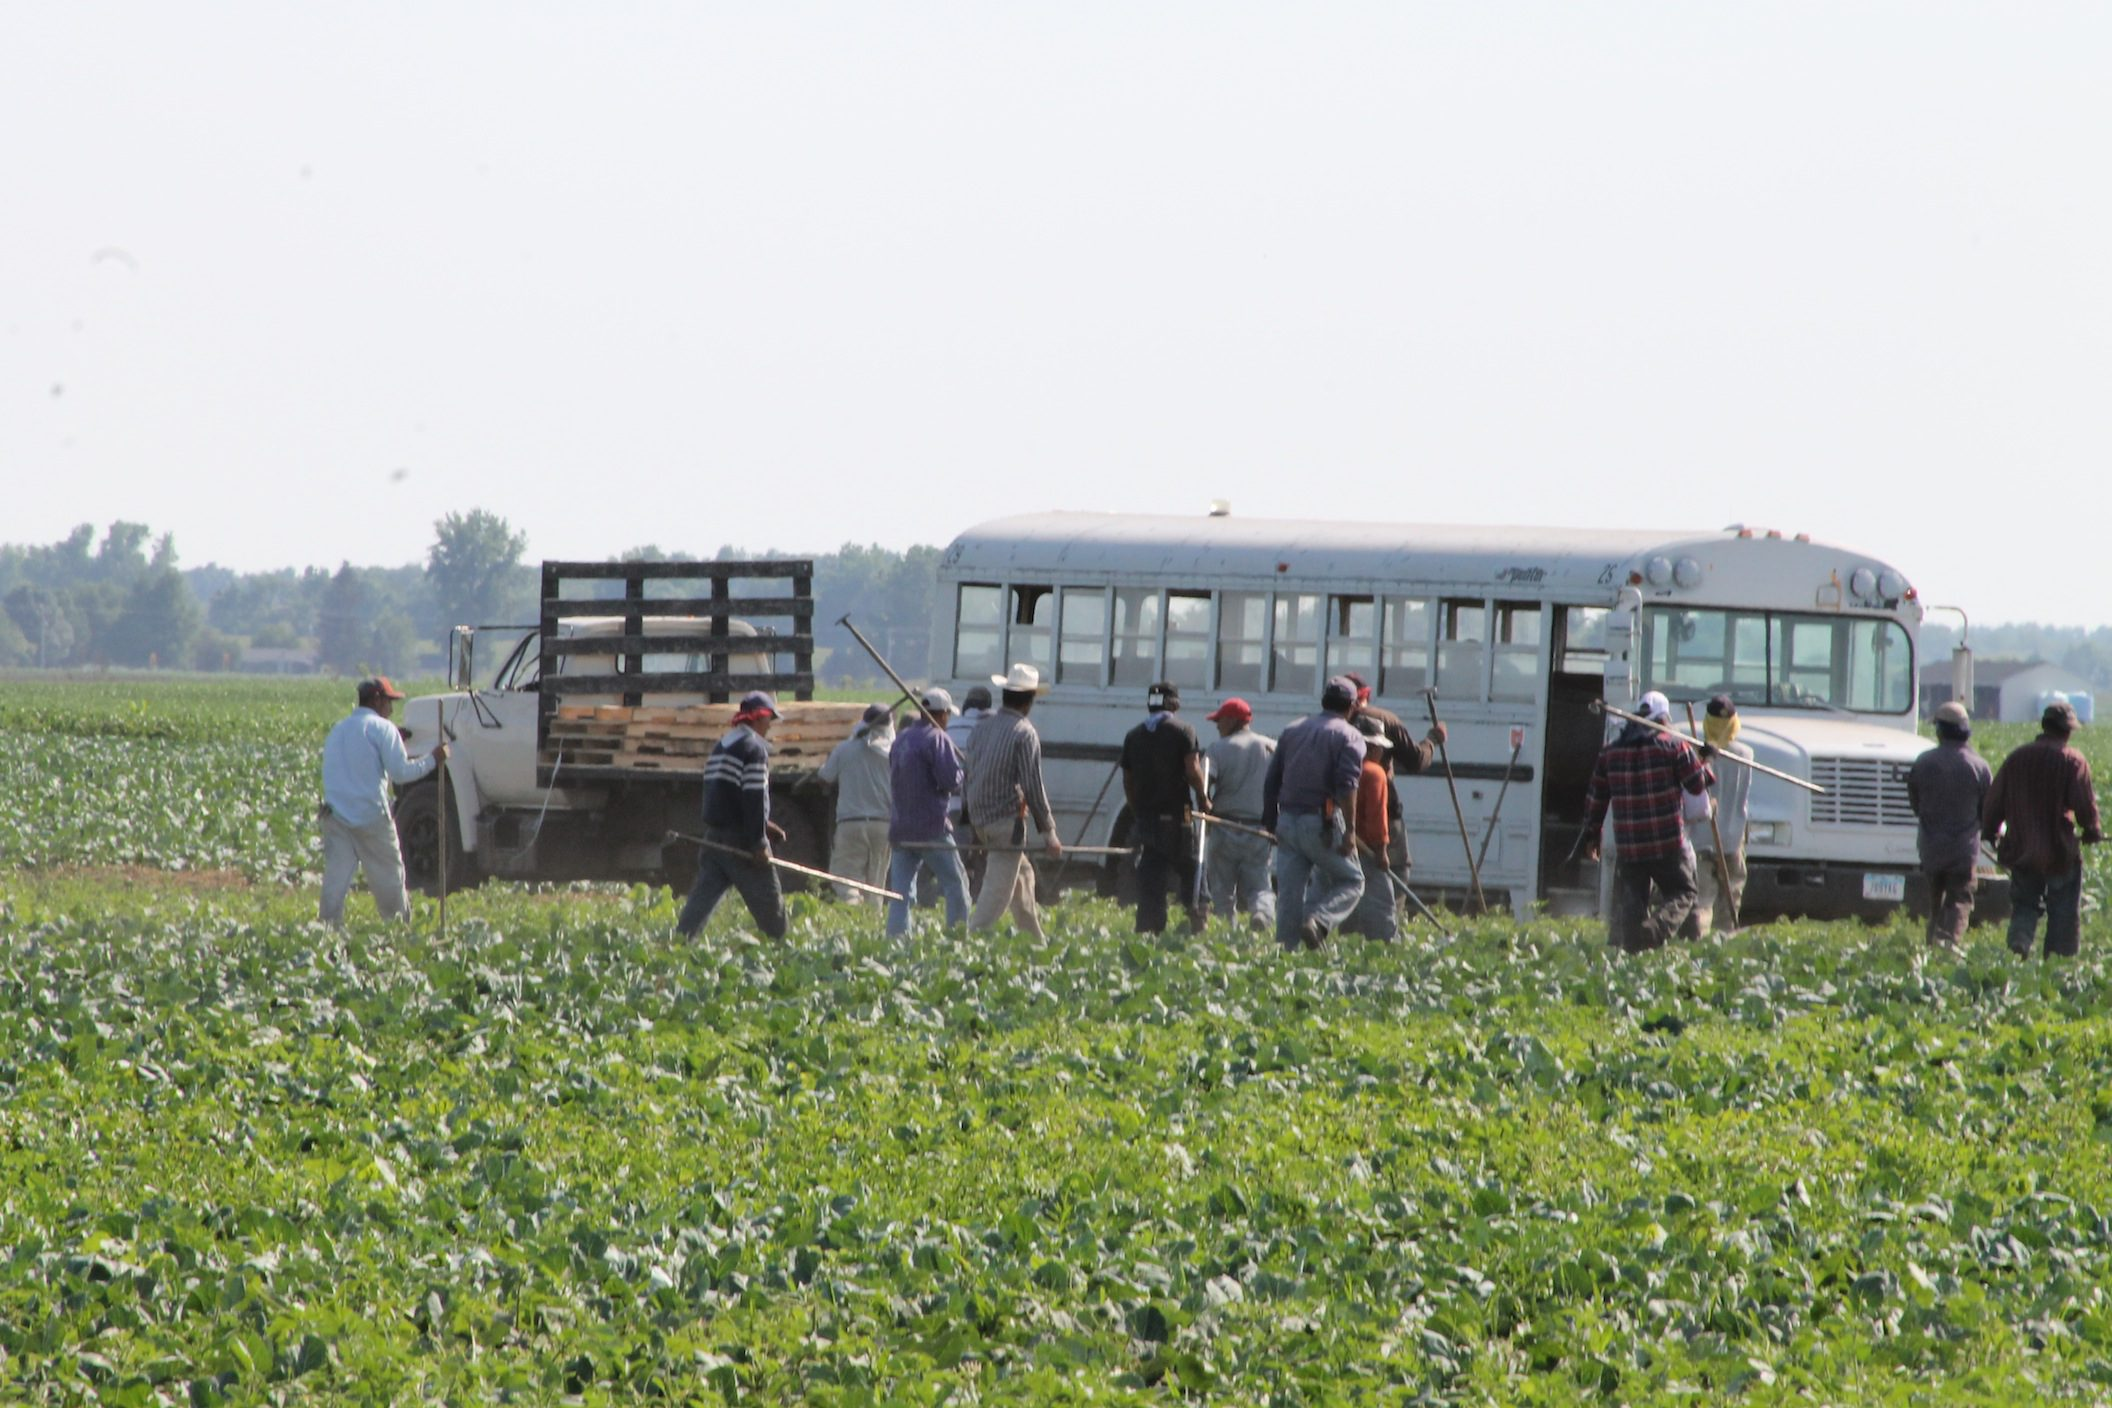 Immigrants working in field